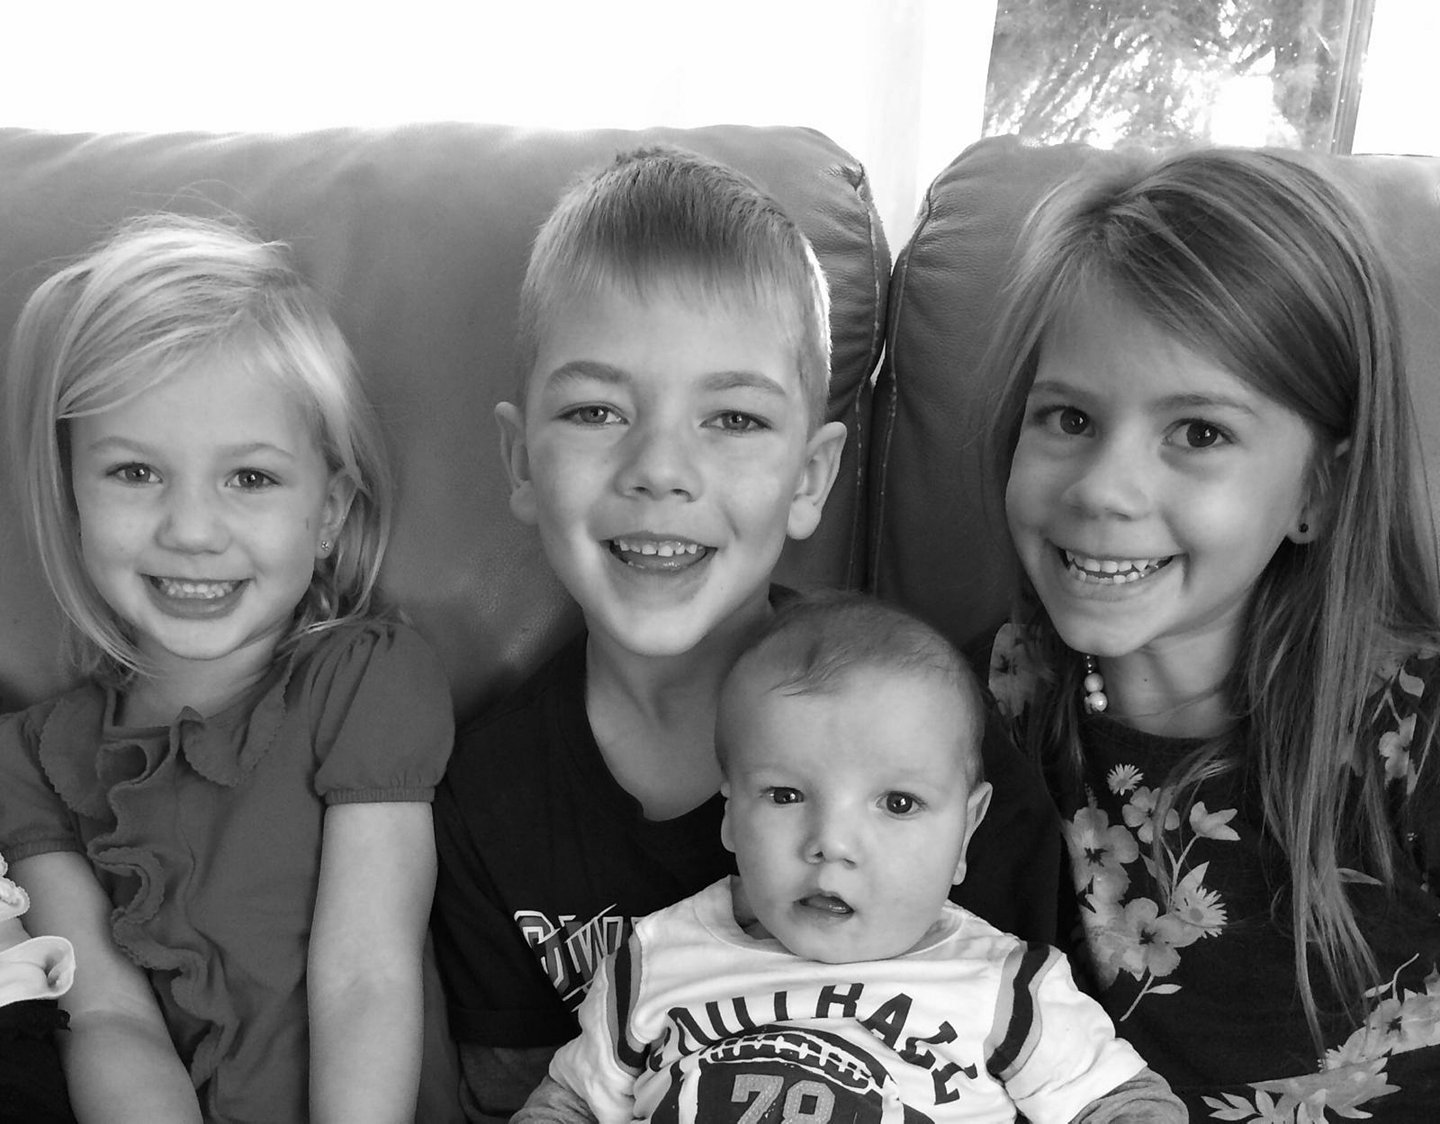 Philip post-surgery with his brother and sisters